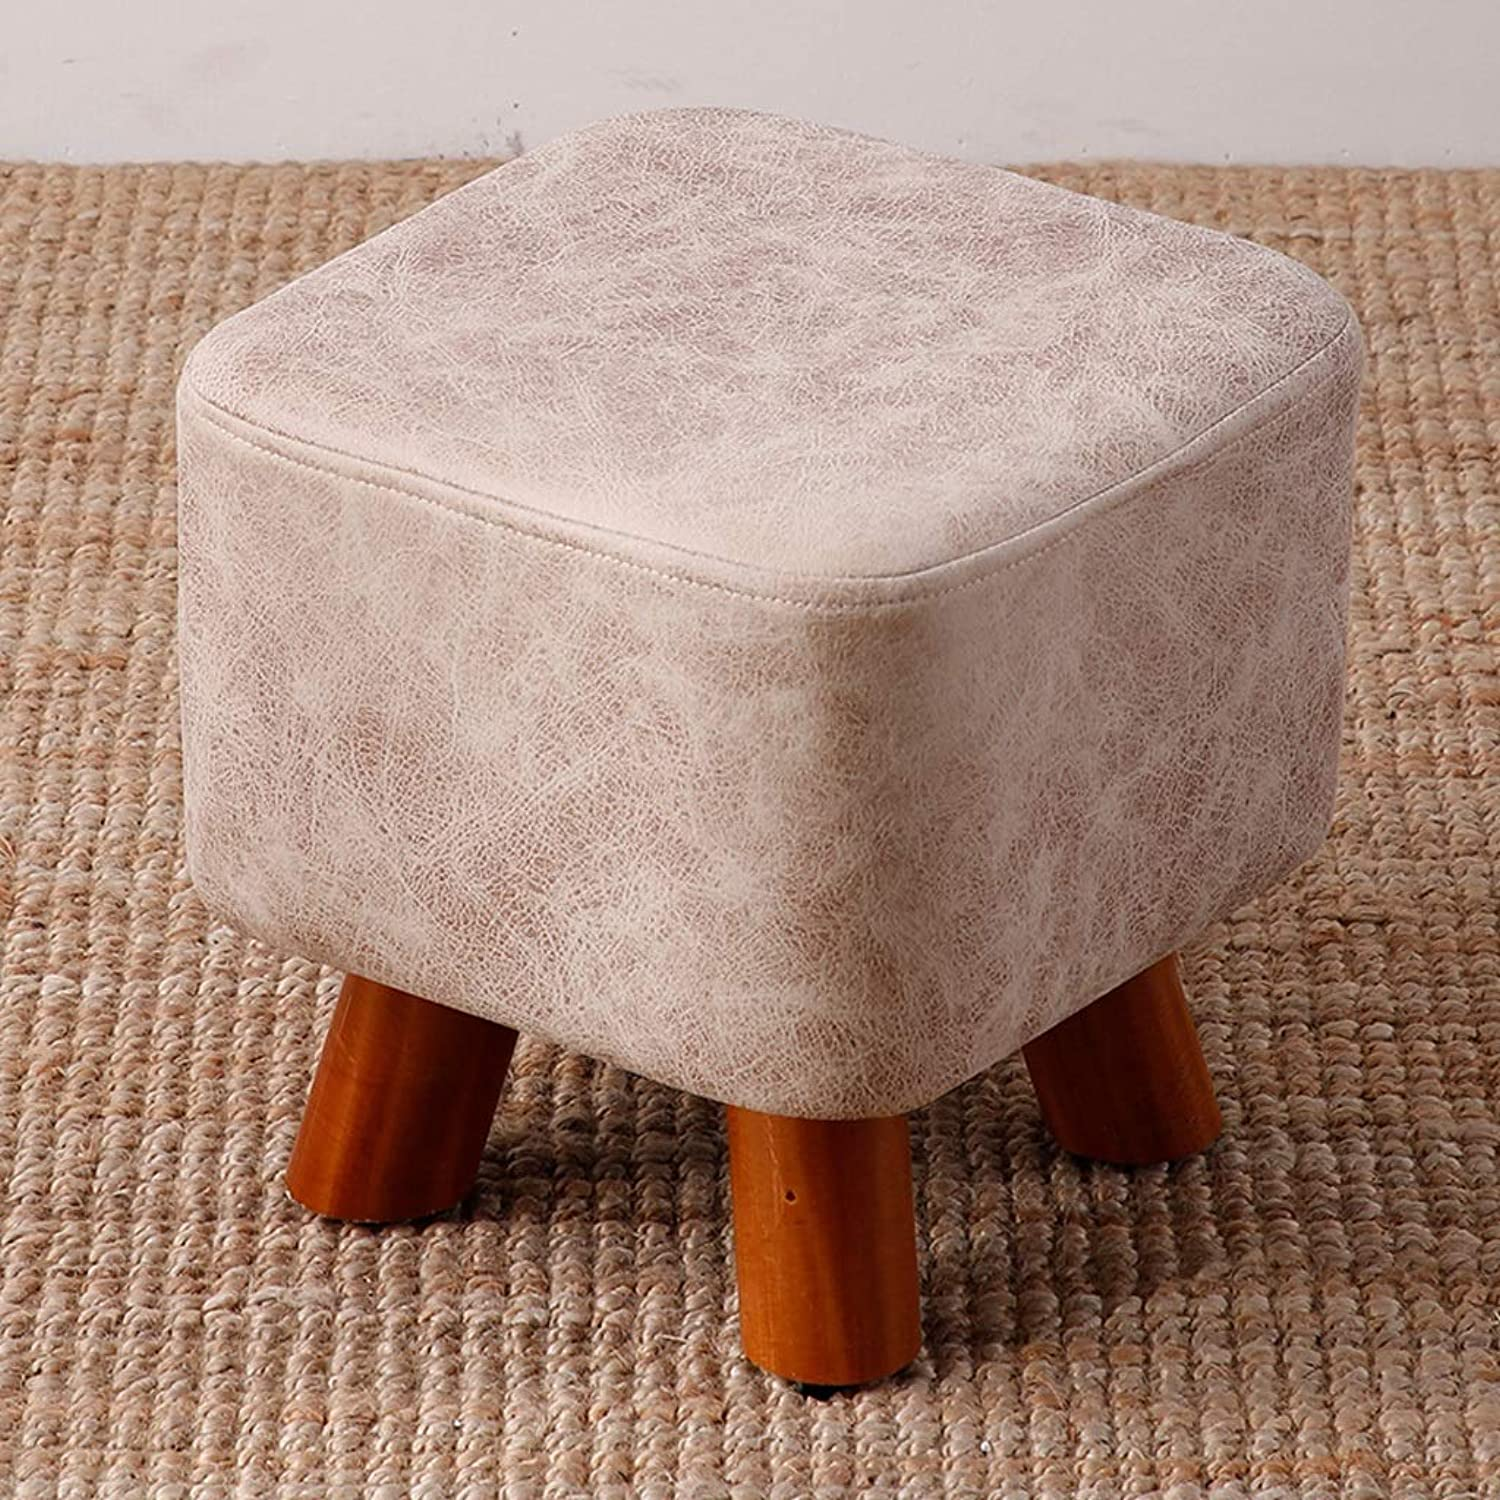 CXQ Modern Creative Stool Home Living Room Fashion Solid Wood Fabric Square Stool Sofa Stool Change shoes Bench White Bench (Size   M)